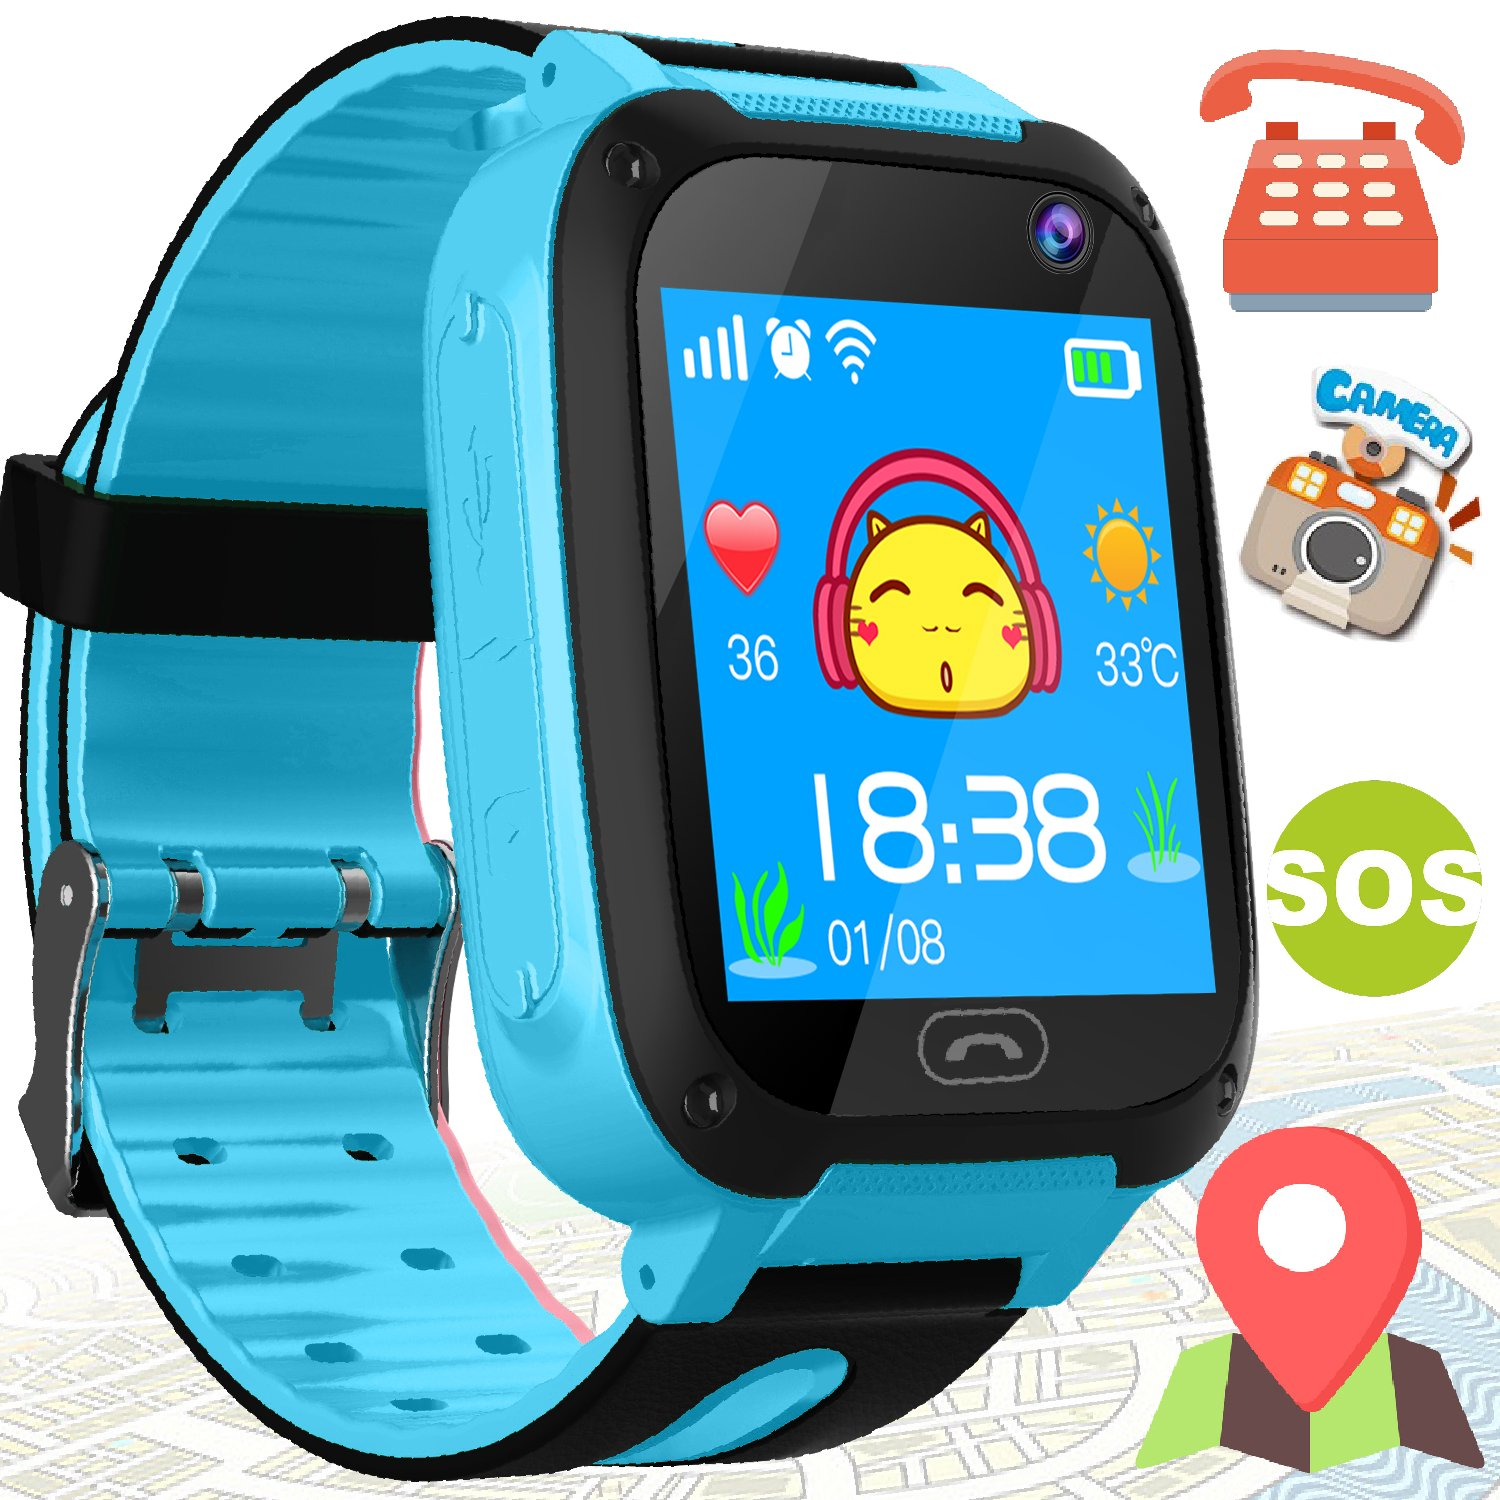 Kids Smart Watch Phone - Kids GPS Tracker Smartwatch for Girls Boys with Mobile Phone SOS Anti-lost Camera Game Touch Screen Children Outdoor Digital Wrist Watch Bracelet for Summer Holiday Gift by Kidaily (Image #1)